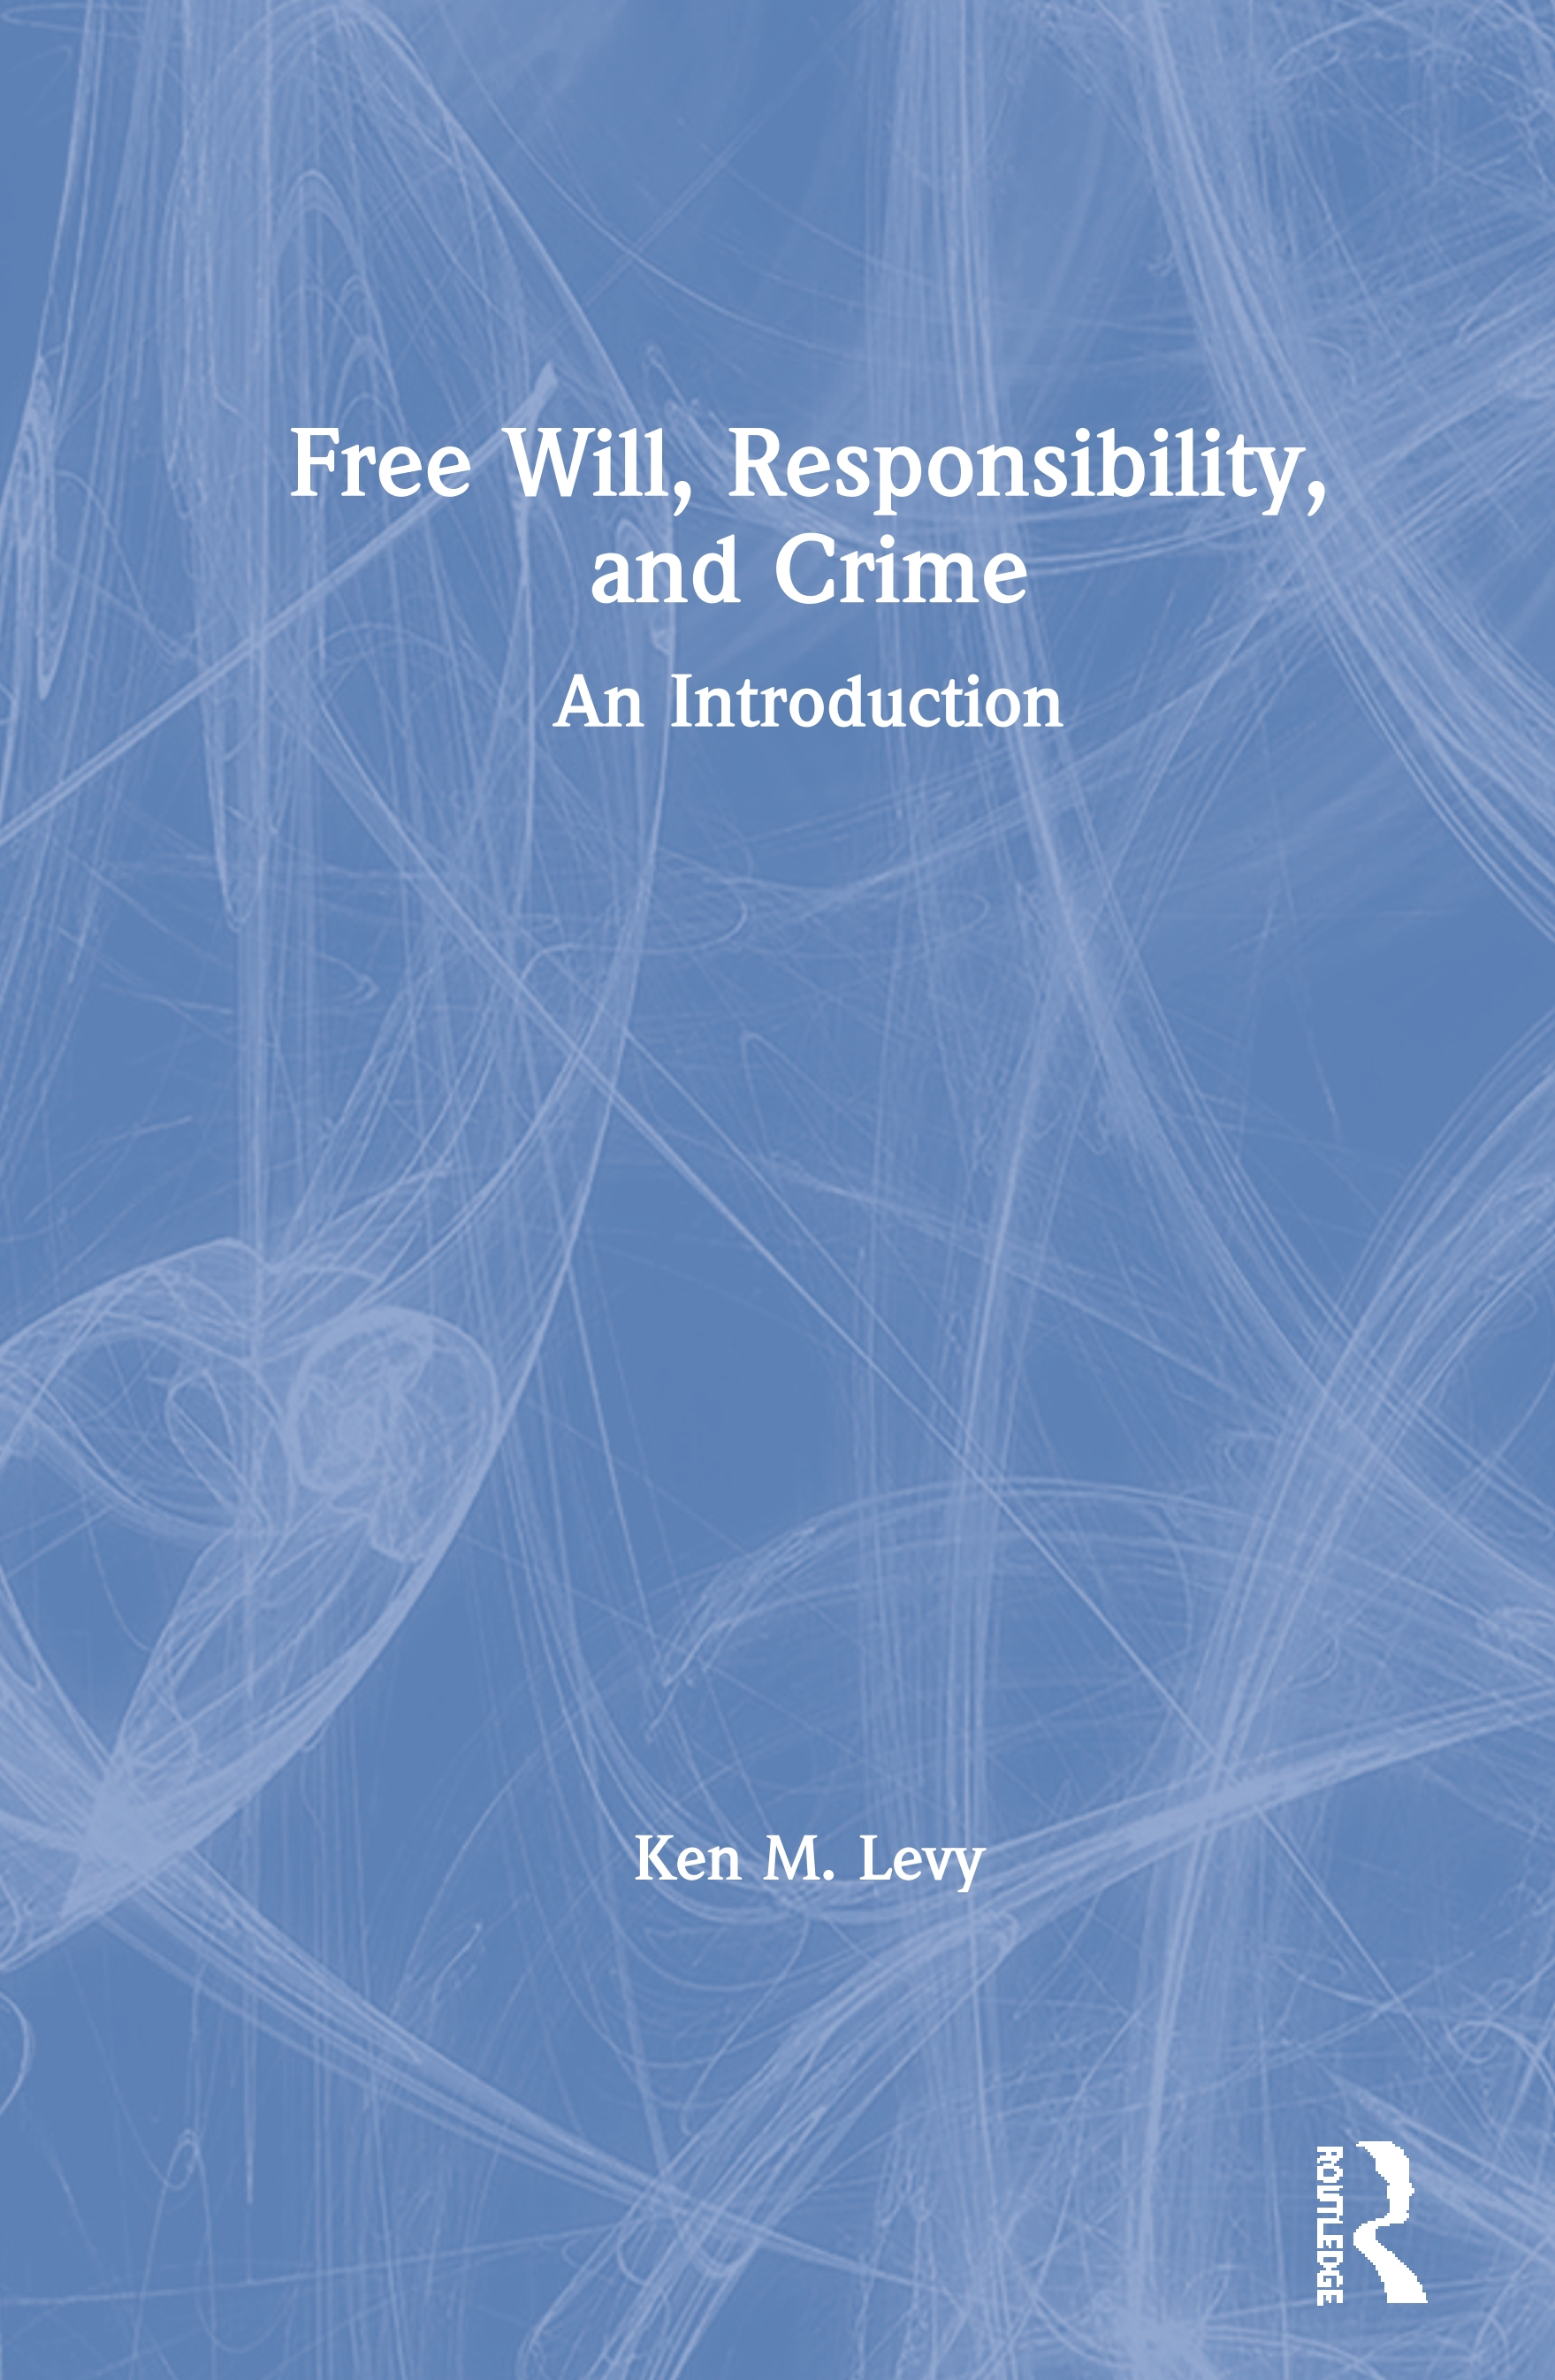 Free Will, Responsibility, and Crime | An Introduction